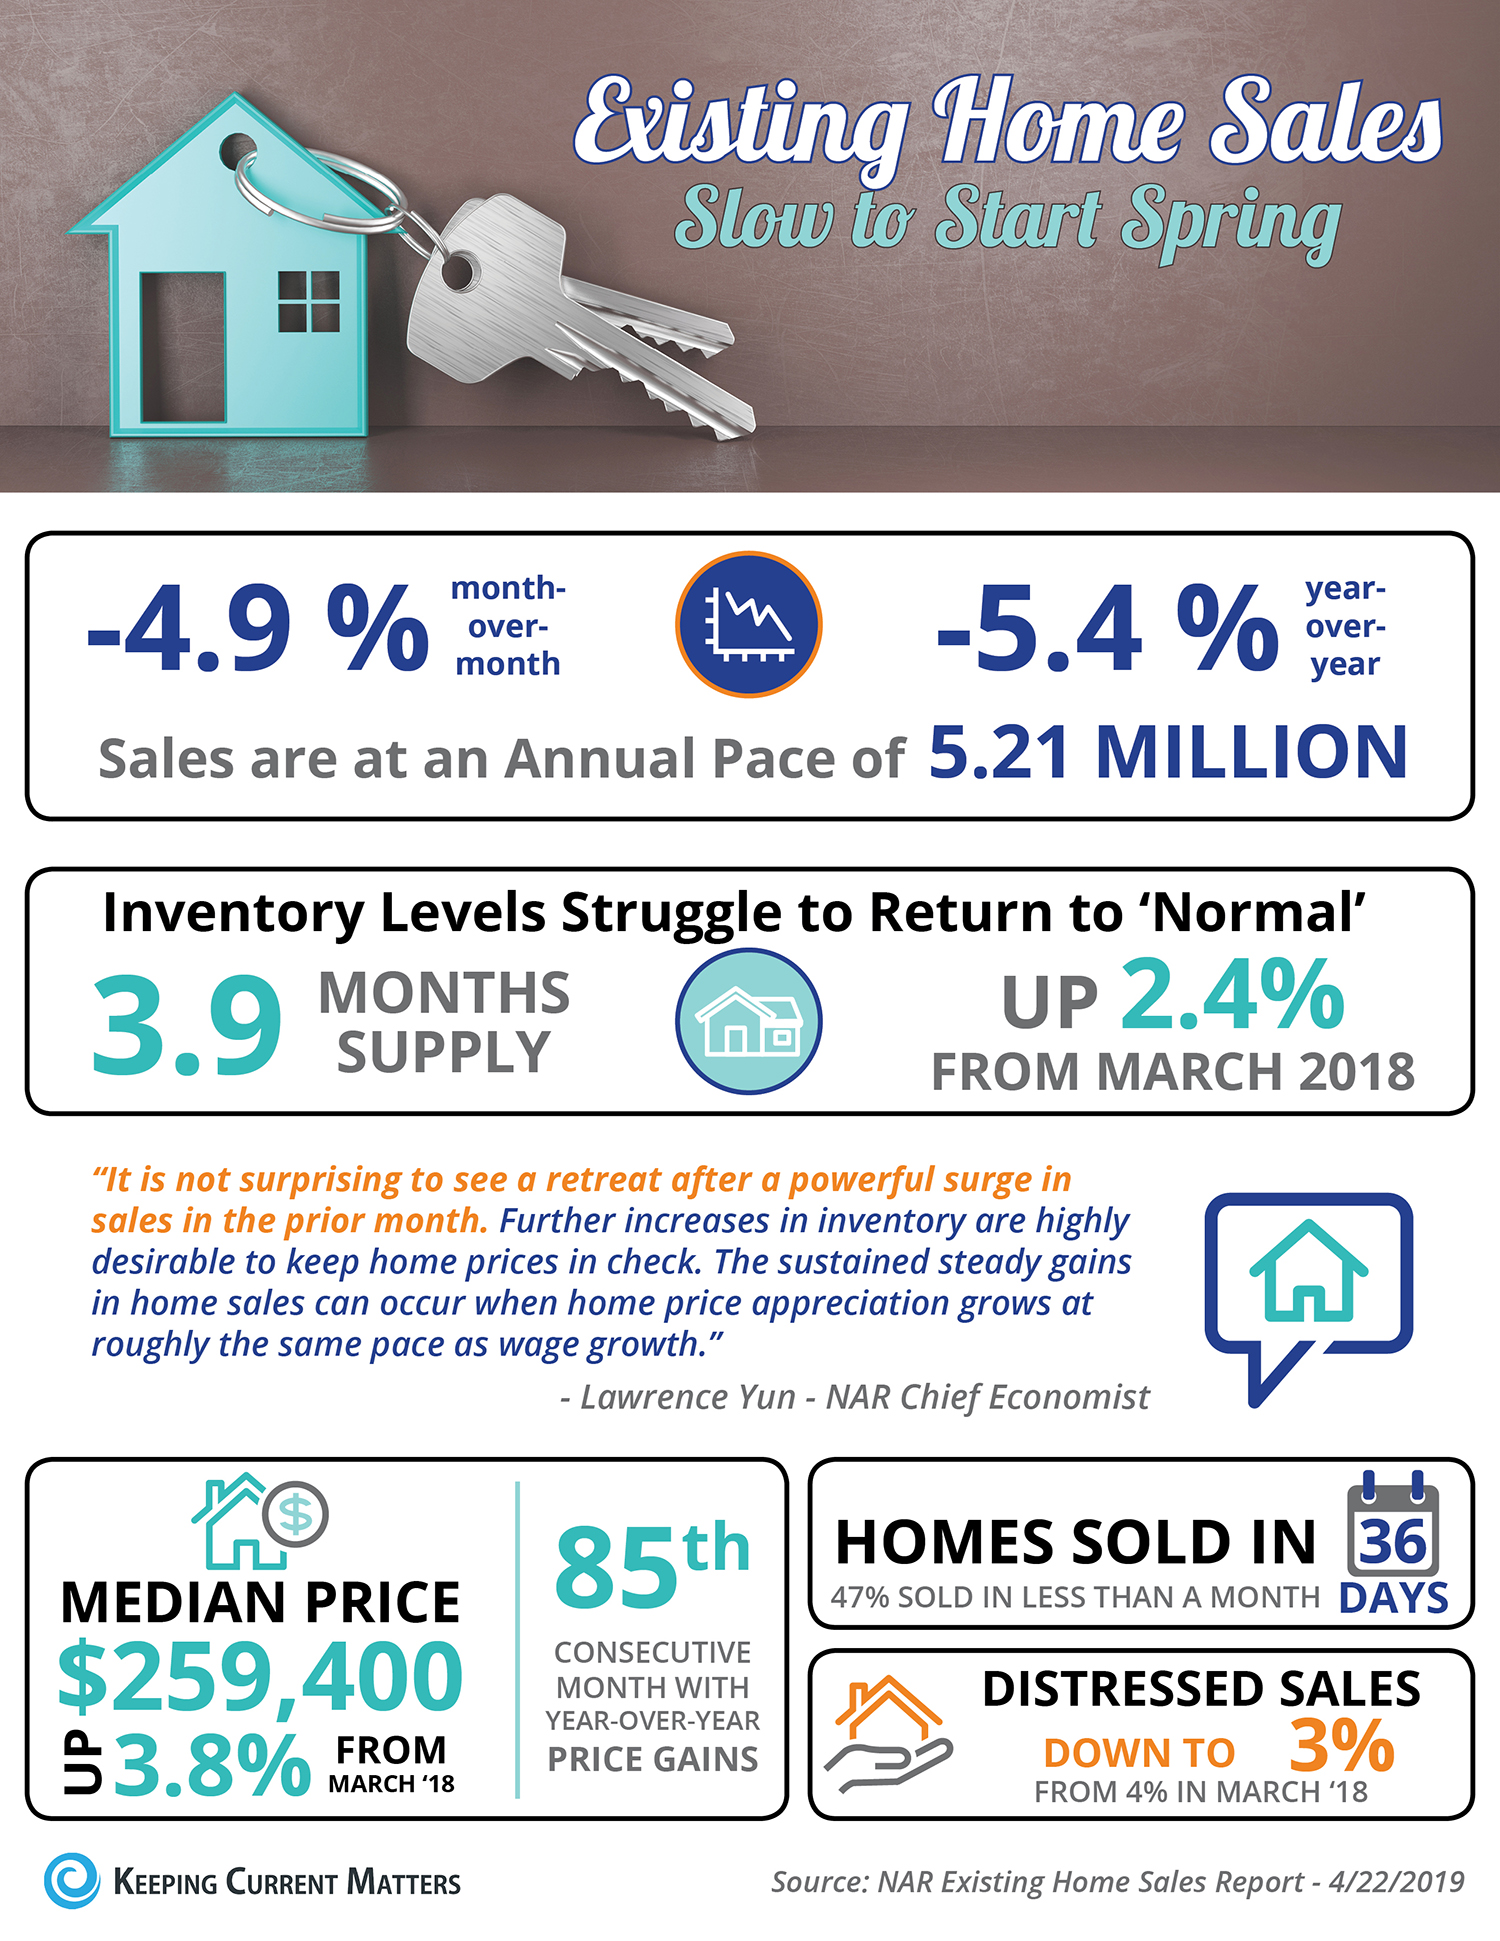 Existing Home Sales Slow to Start Spring [INFOGRAPHIC] | Keeping Current Matters